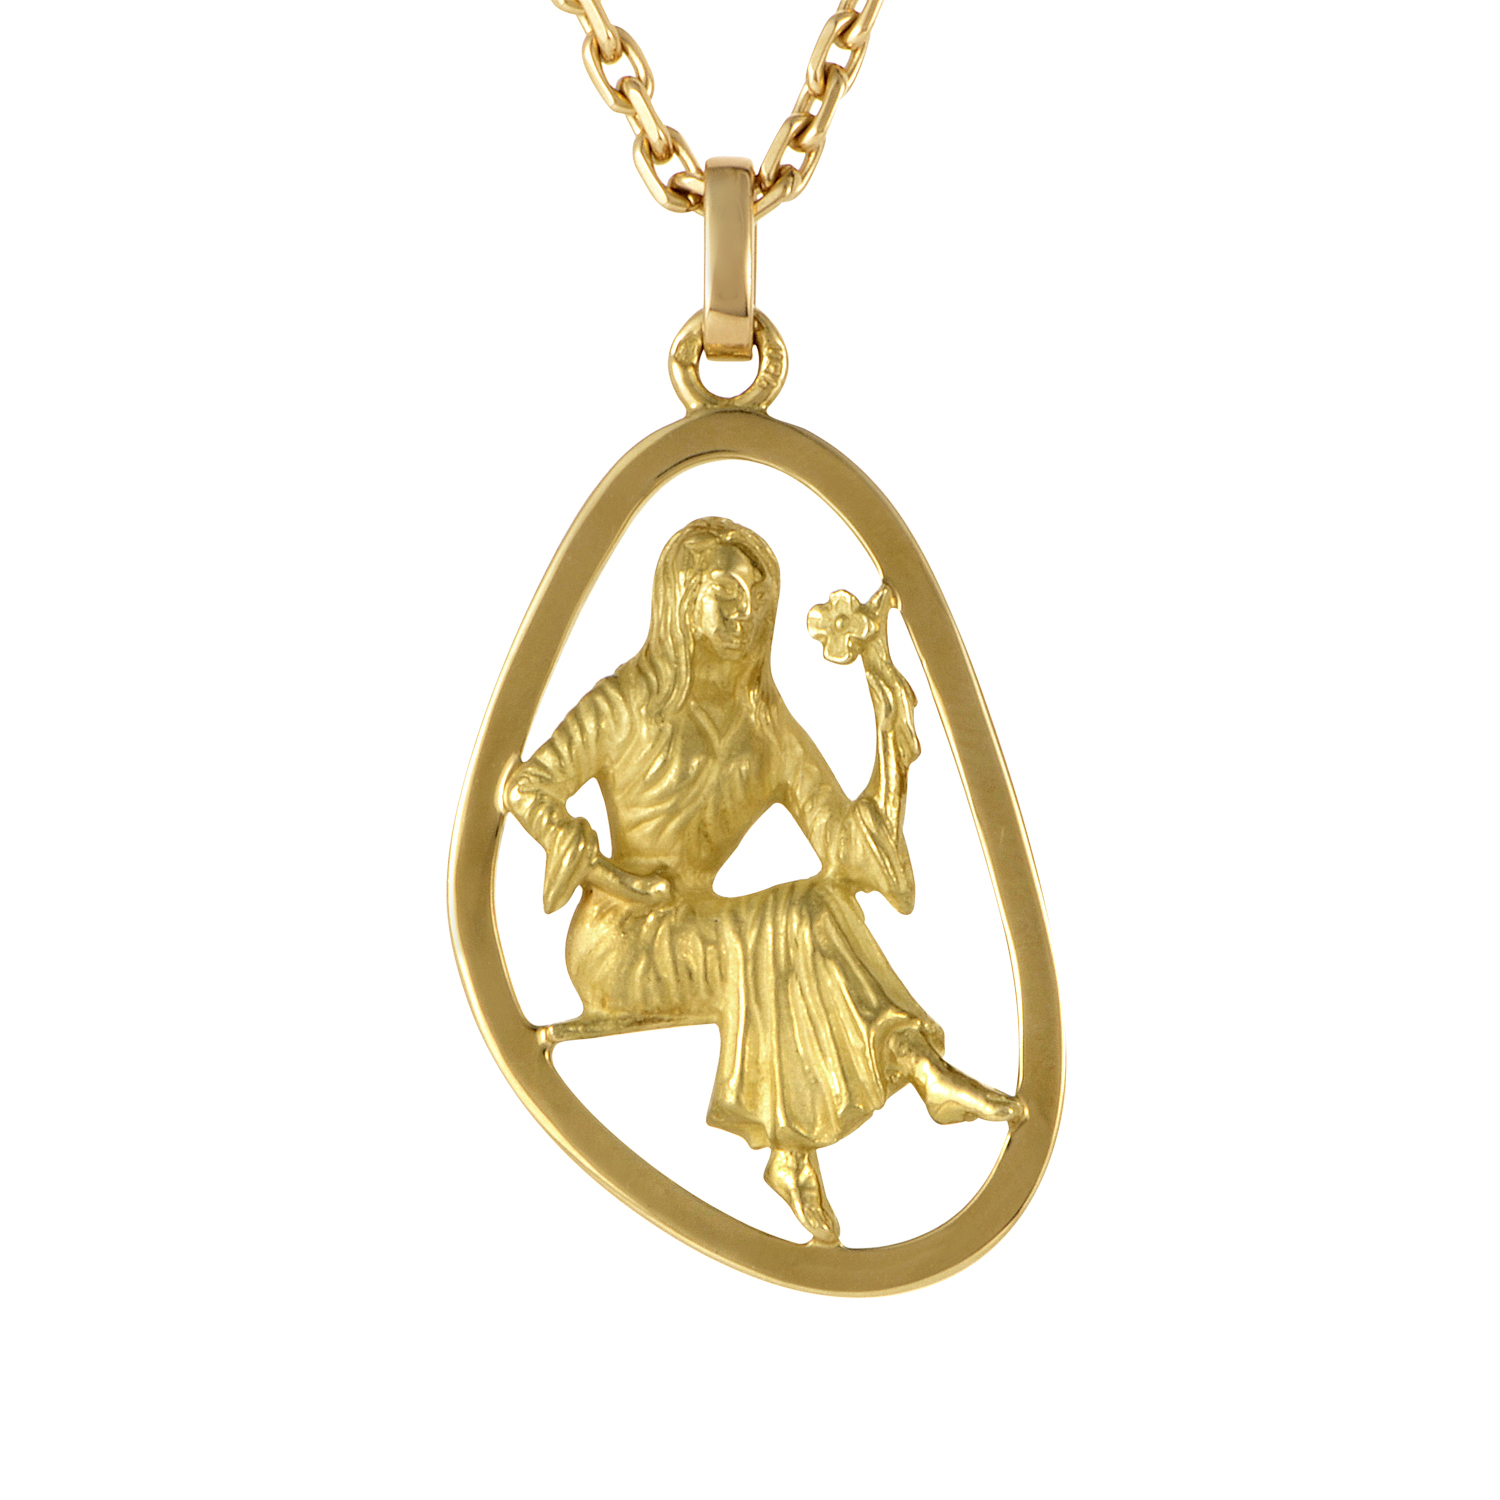 Boucheron 18K Yellow Gold Virgo Pendant Necklace